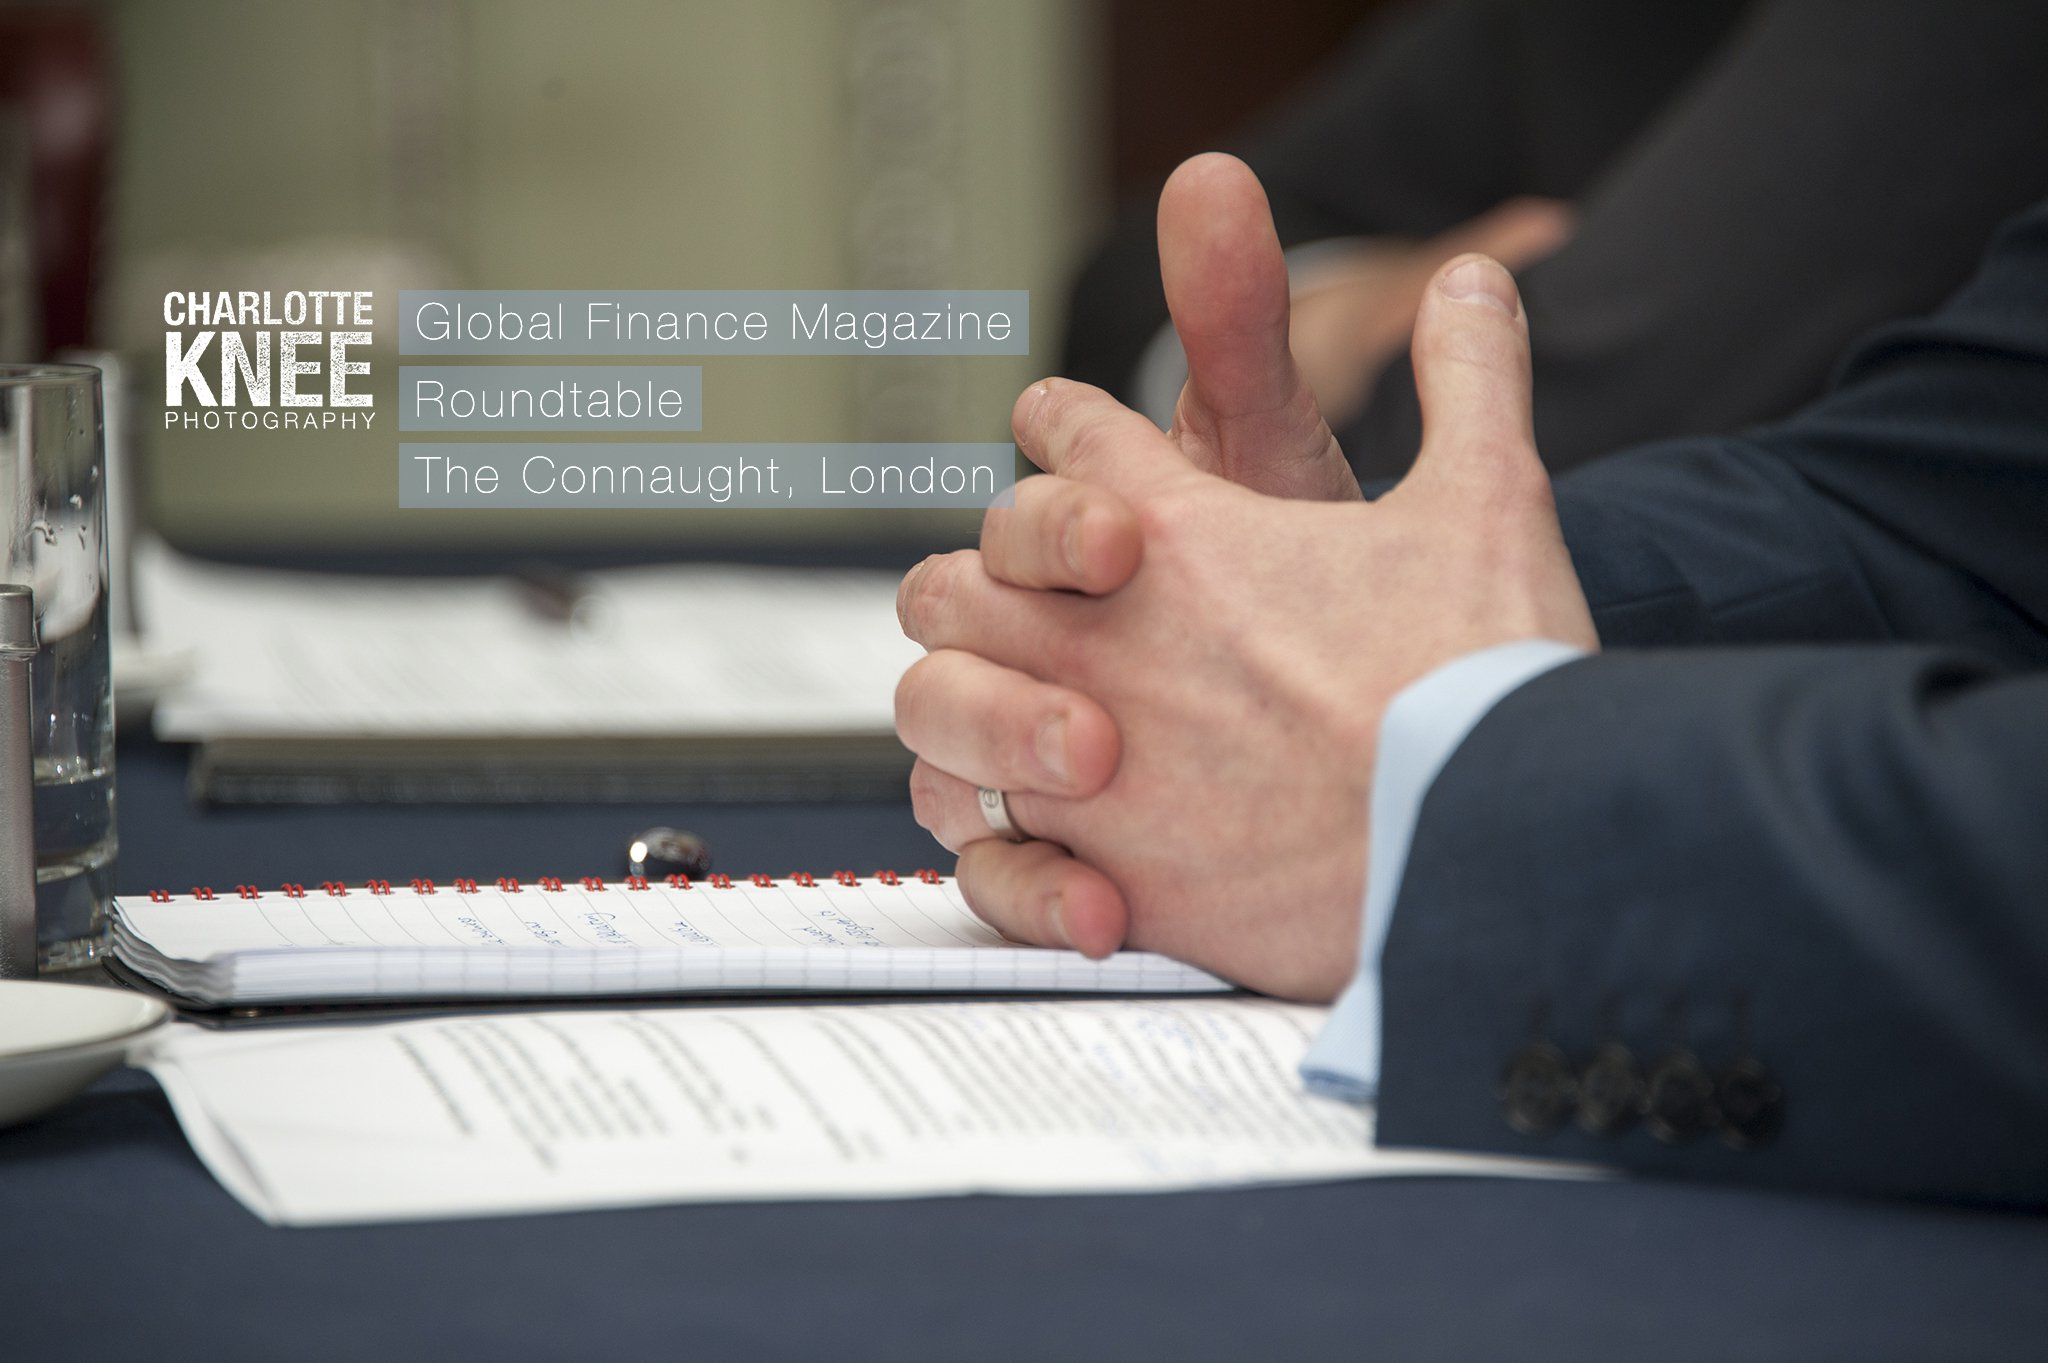 Event-Photography-Global-Finance-Magazine-Roundtable-Charlotte-Knee-Photography_0001.jpg